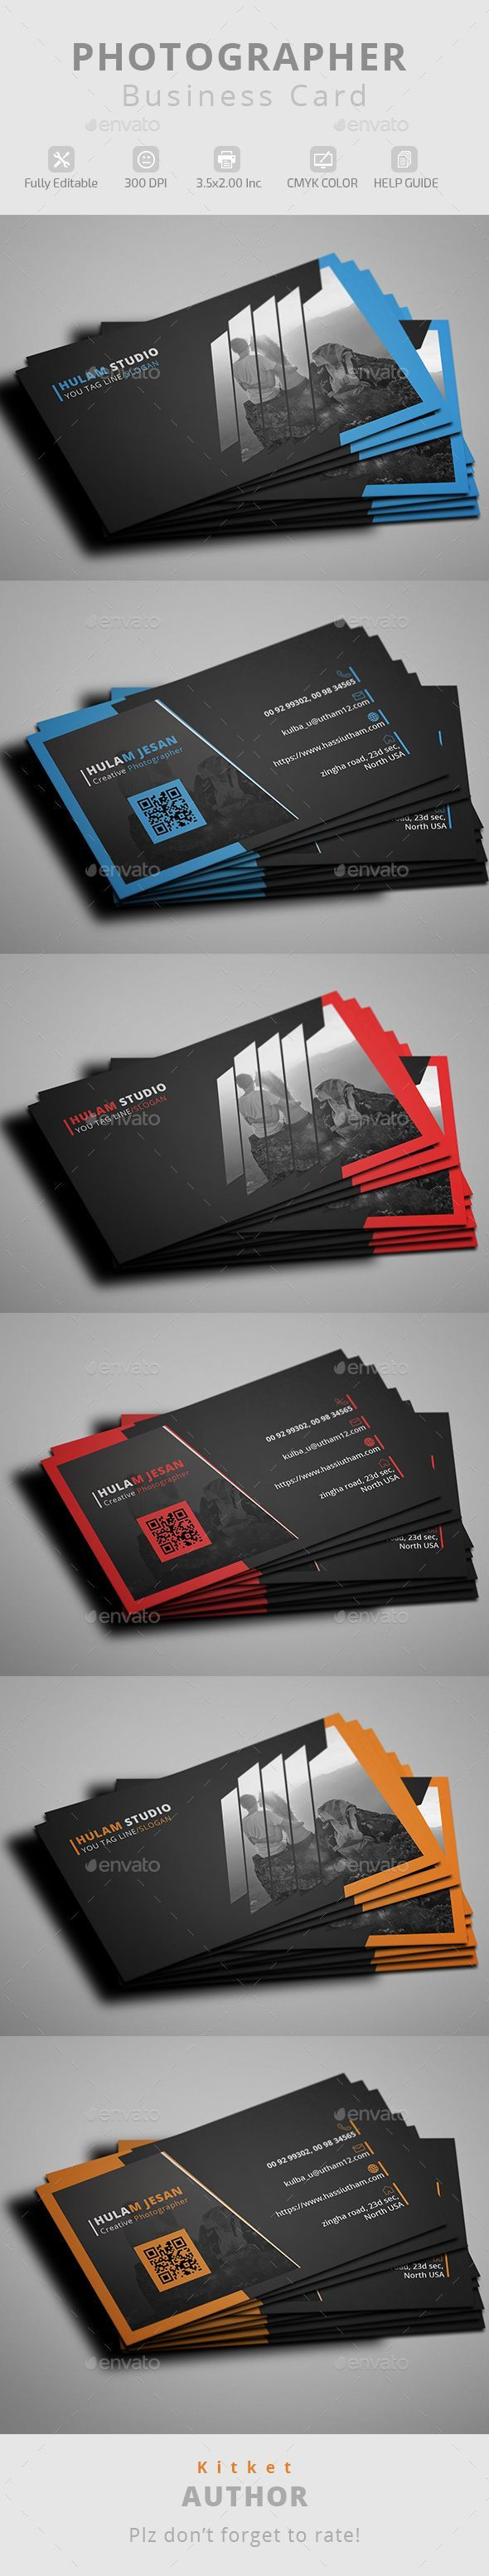 Best 25 free business card design ideas on pinterest free photographer business card free business card designbest magicingreecefo Gallery